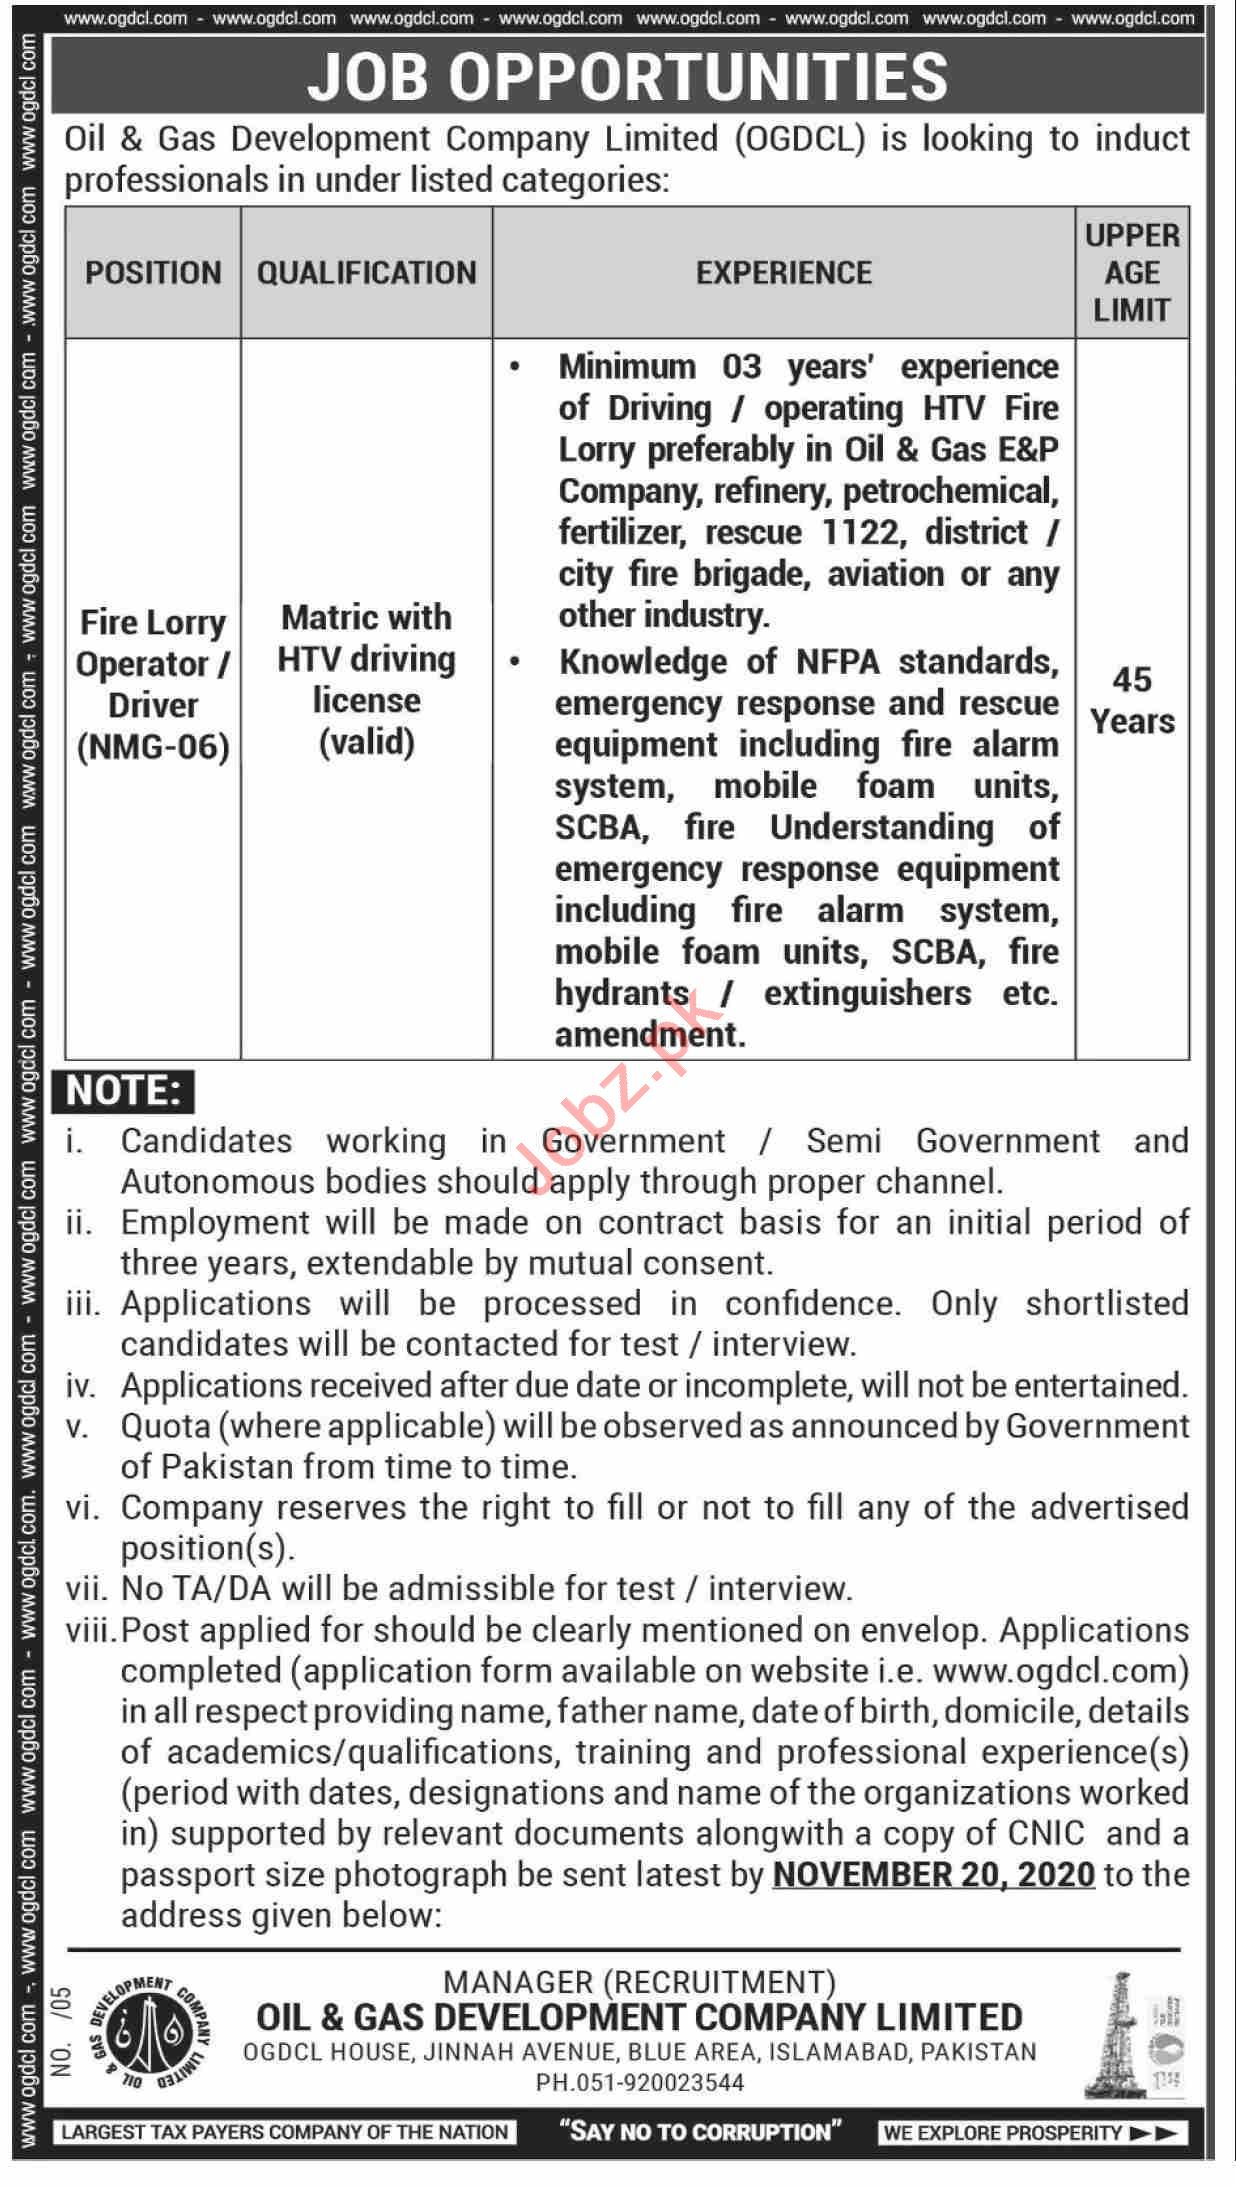 Fire Lorry Operator & Driver Jobs 2020 in OGDCL Islamabad